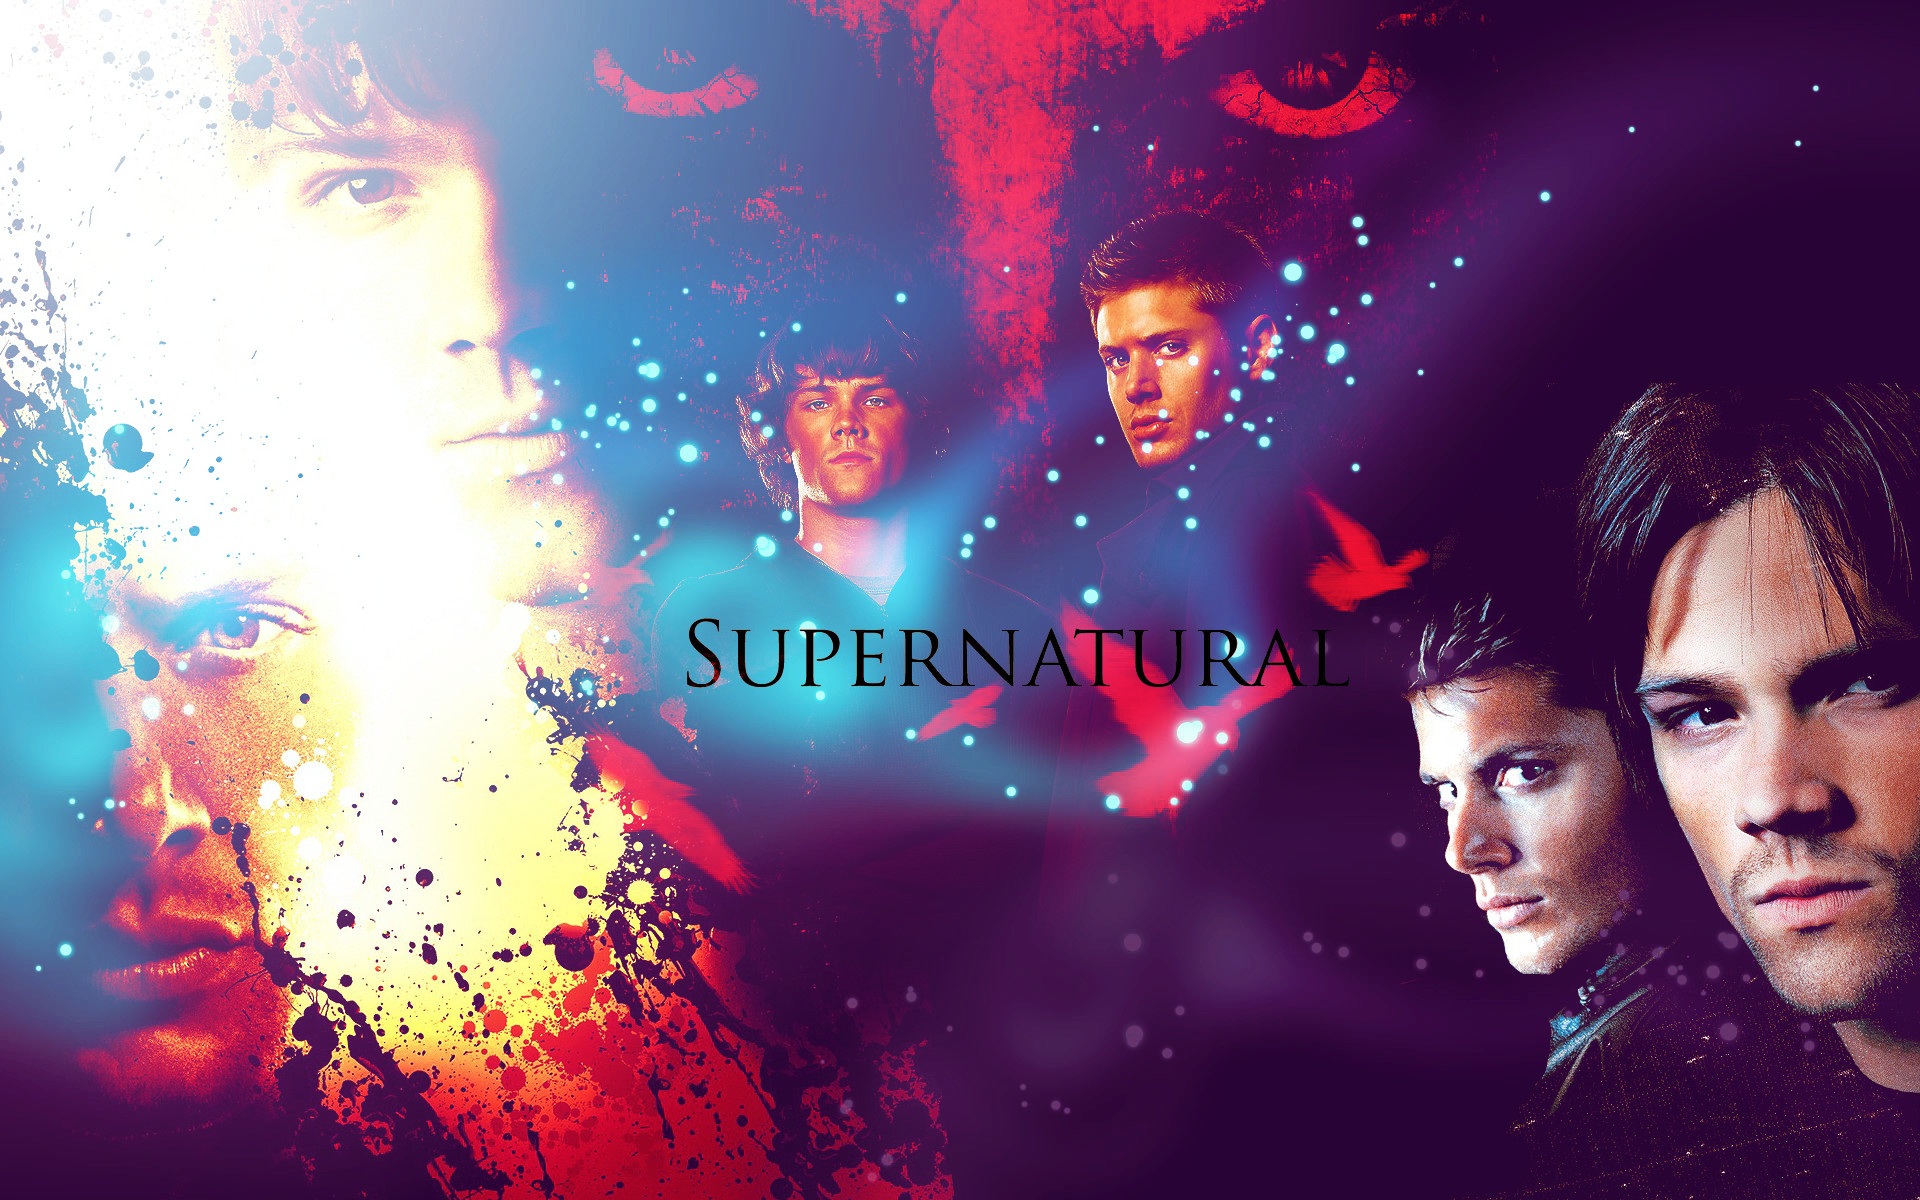 1920x1200 Free-supernatural-wallpaper-HD-background